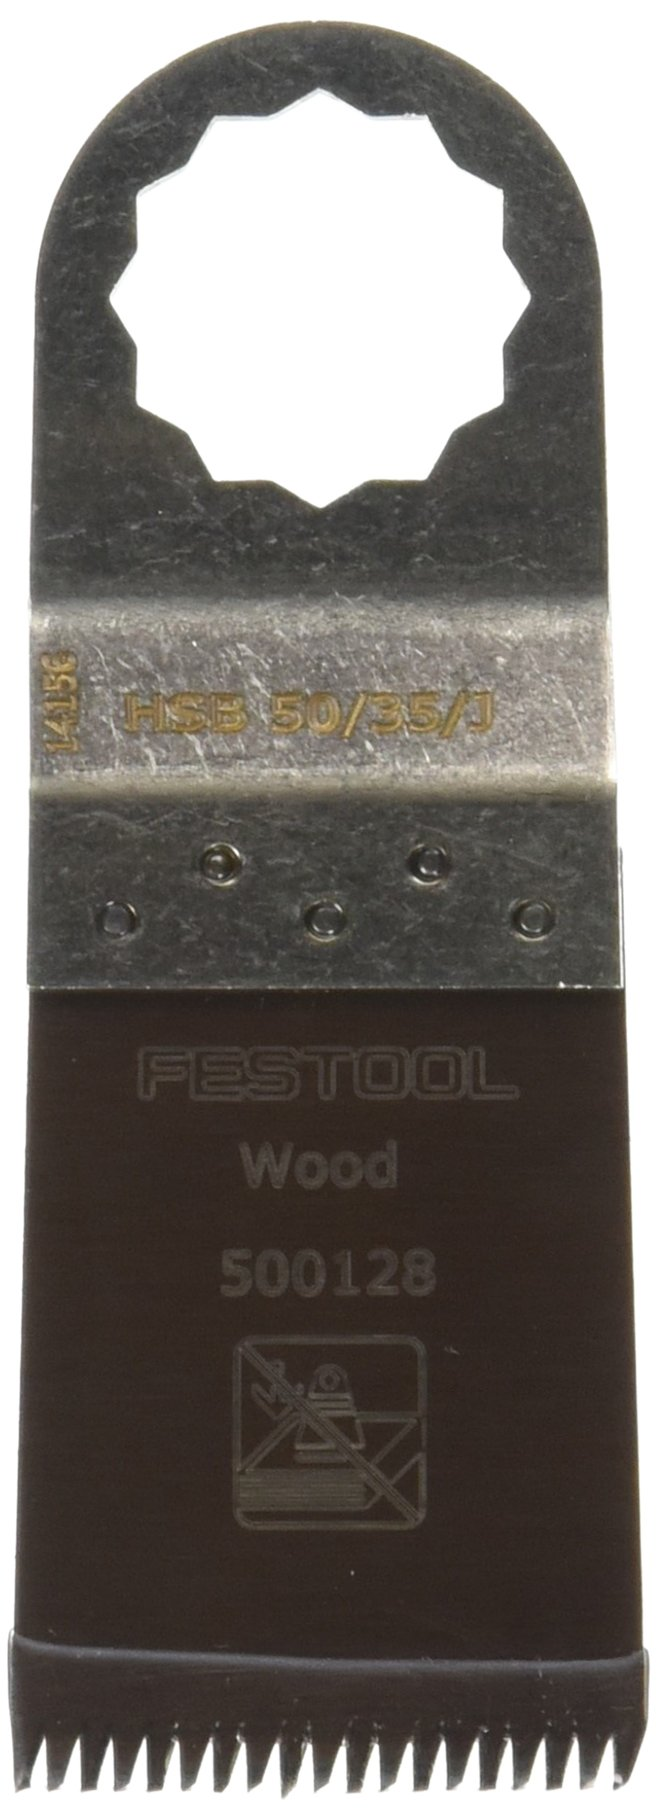 Festool 500142 Vecturo Japanese-Style Blade for Wood, 50mm x 35mm, 5-Pack by Festool